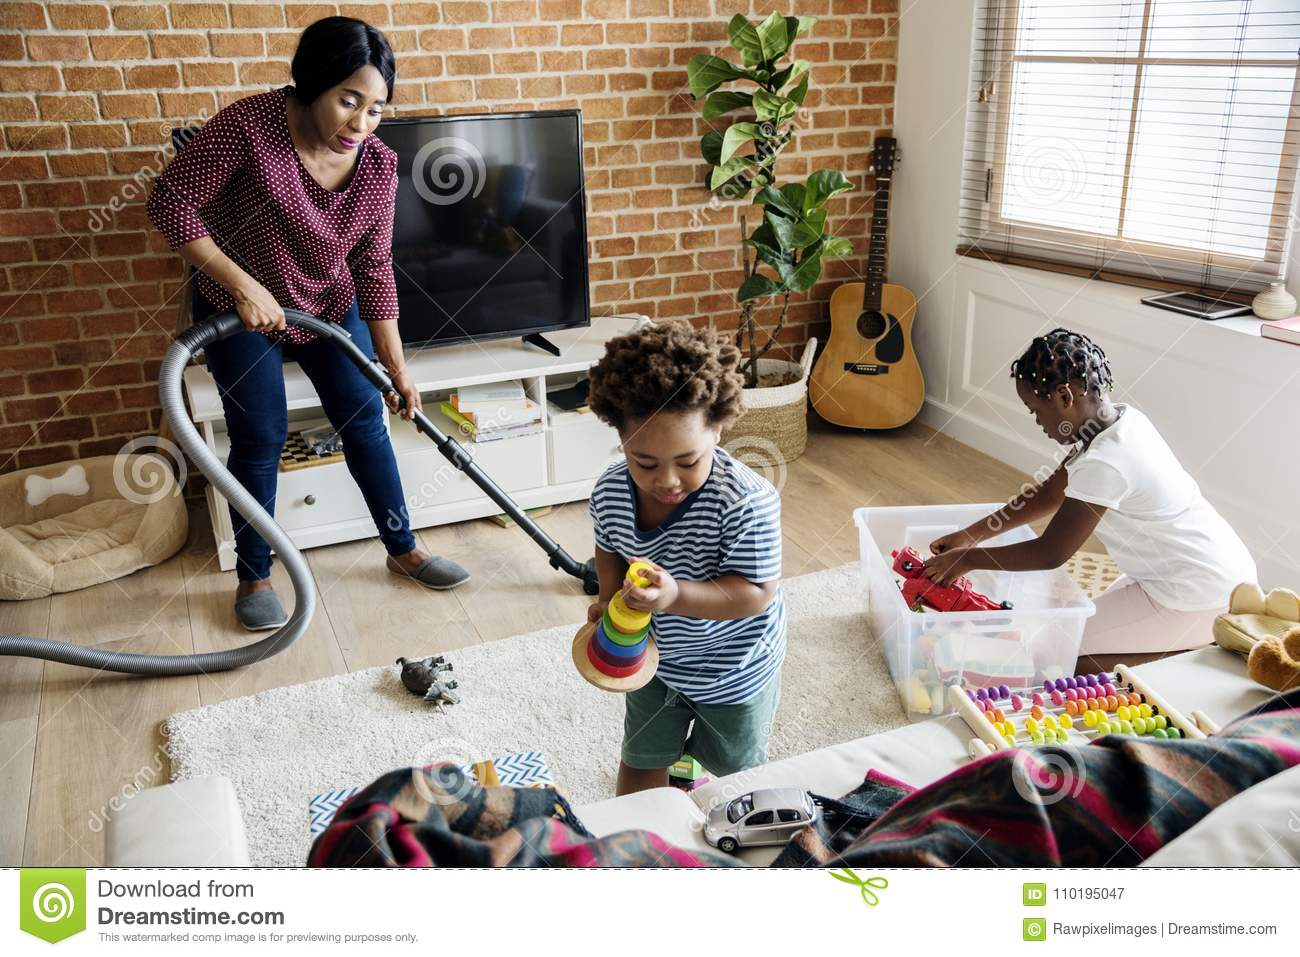 Cleaning house kids stock photos download 351 images for House cleaning stock photos